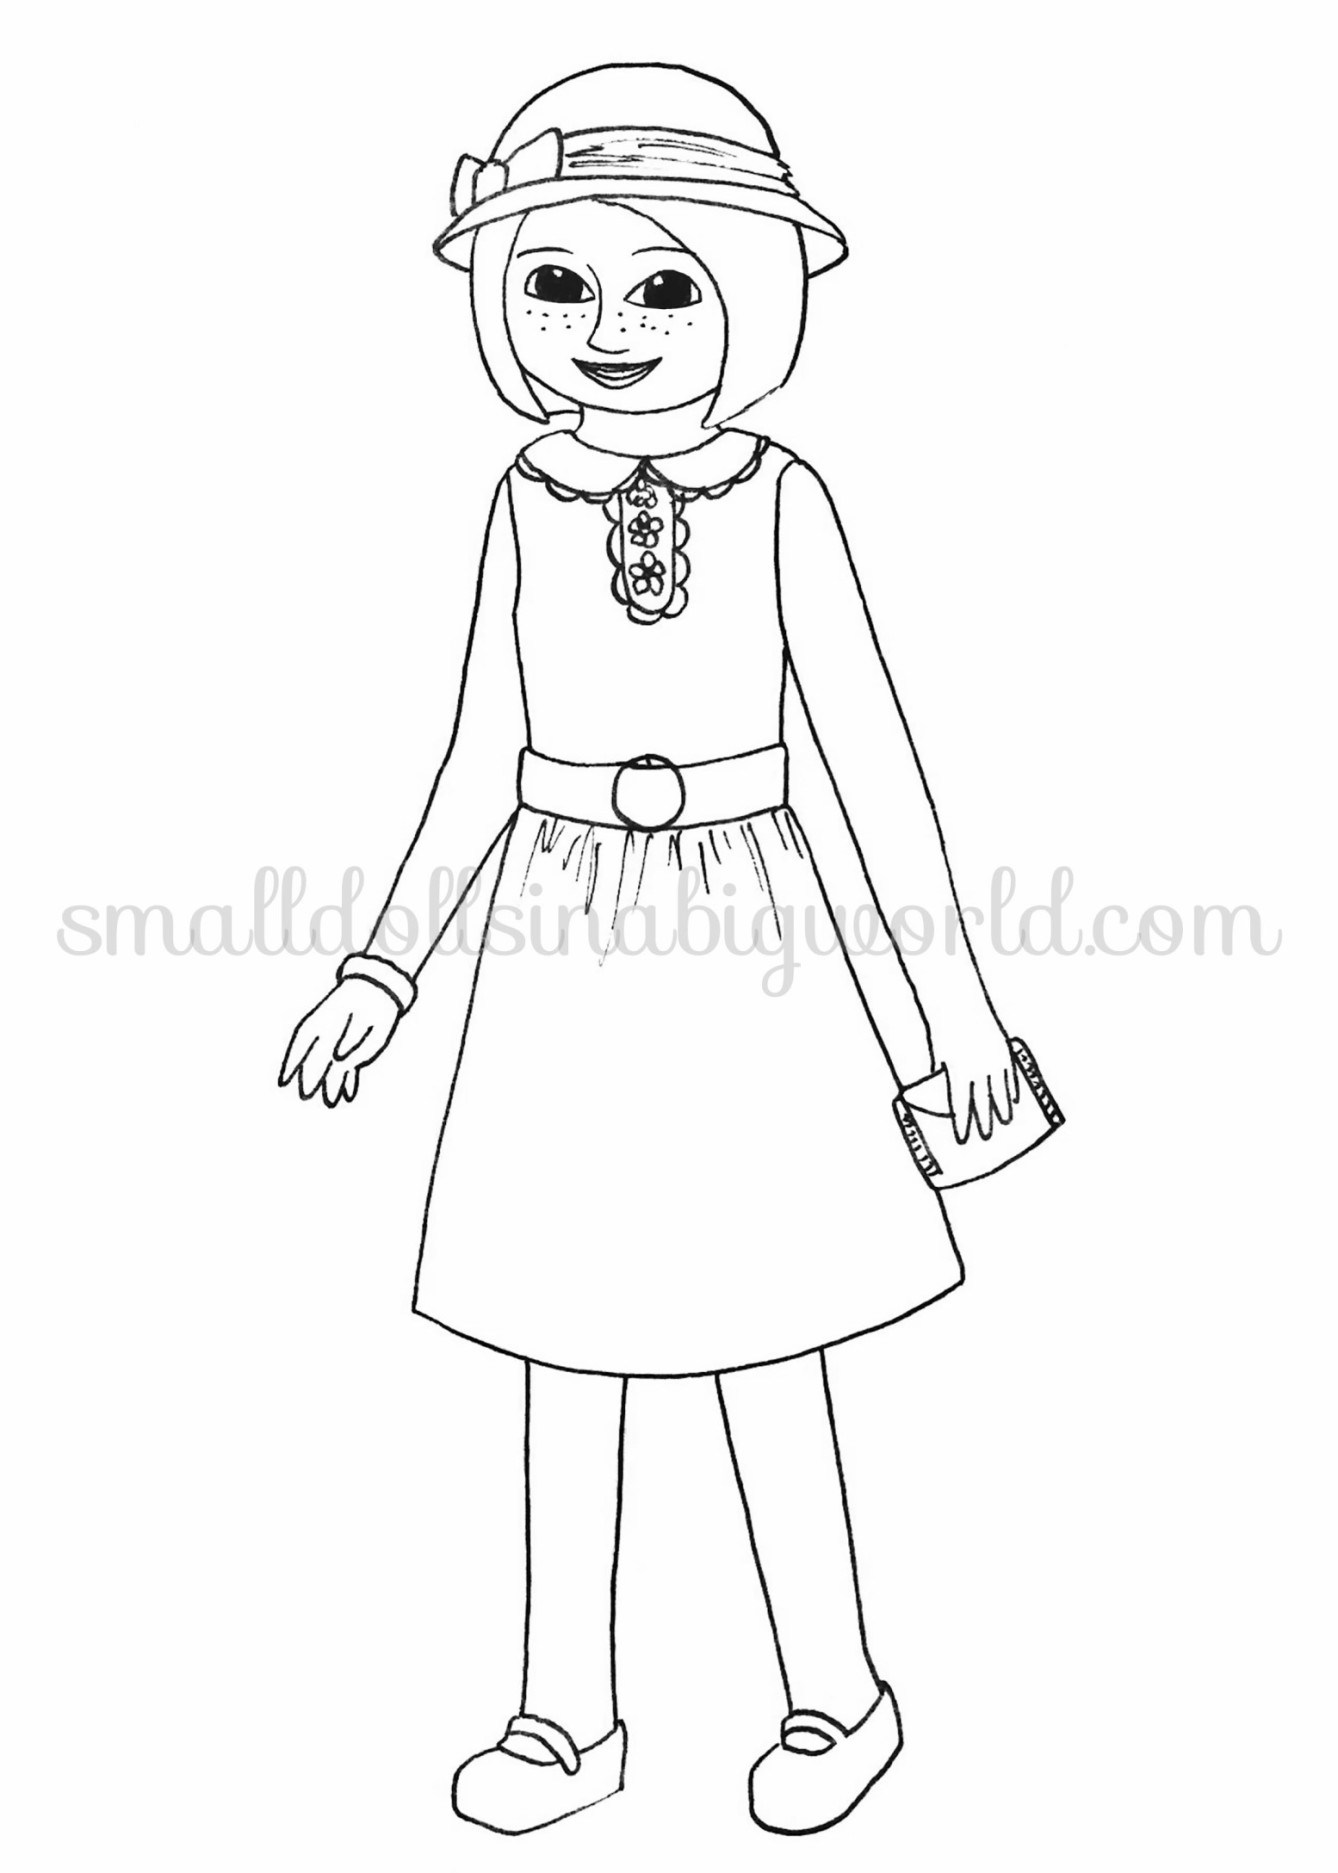 American Girl Doll Coloring Pages Free At Getcolorings